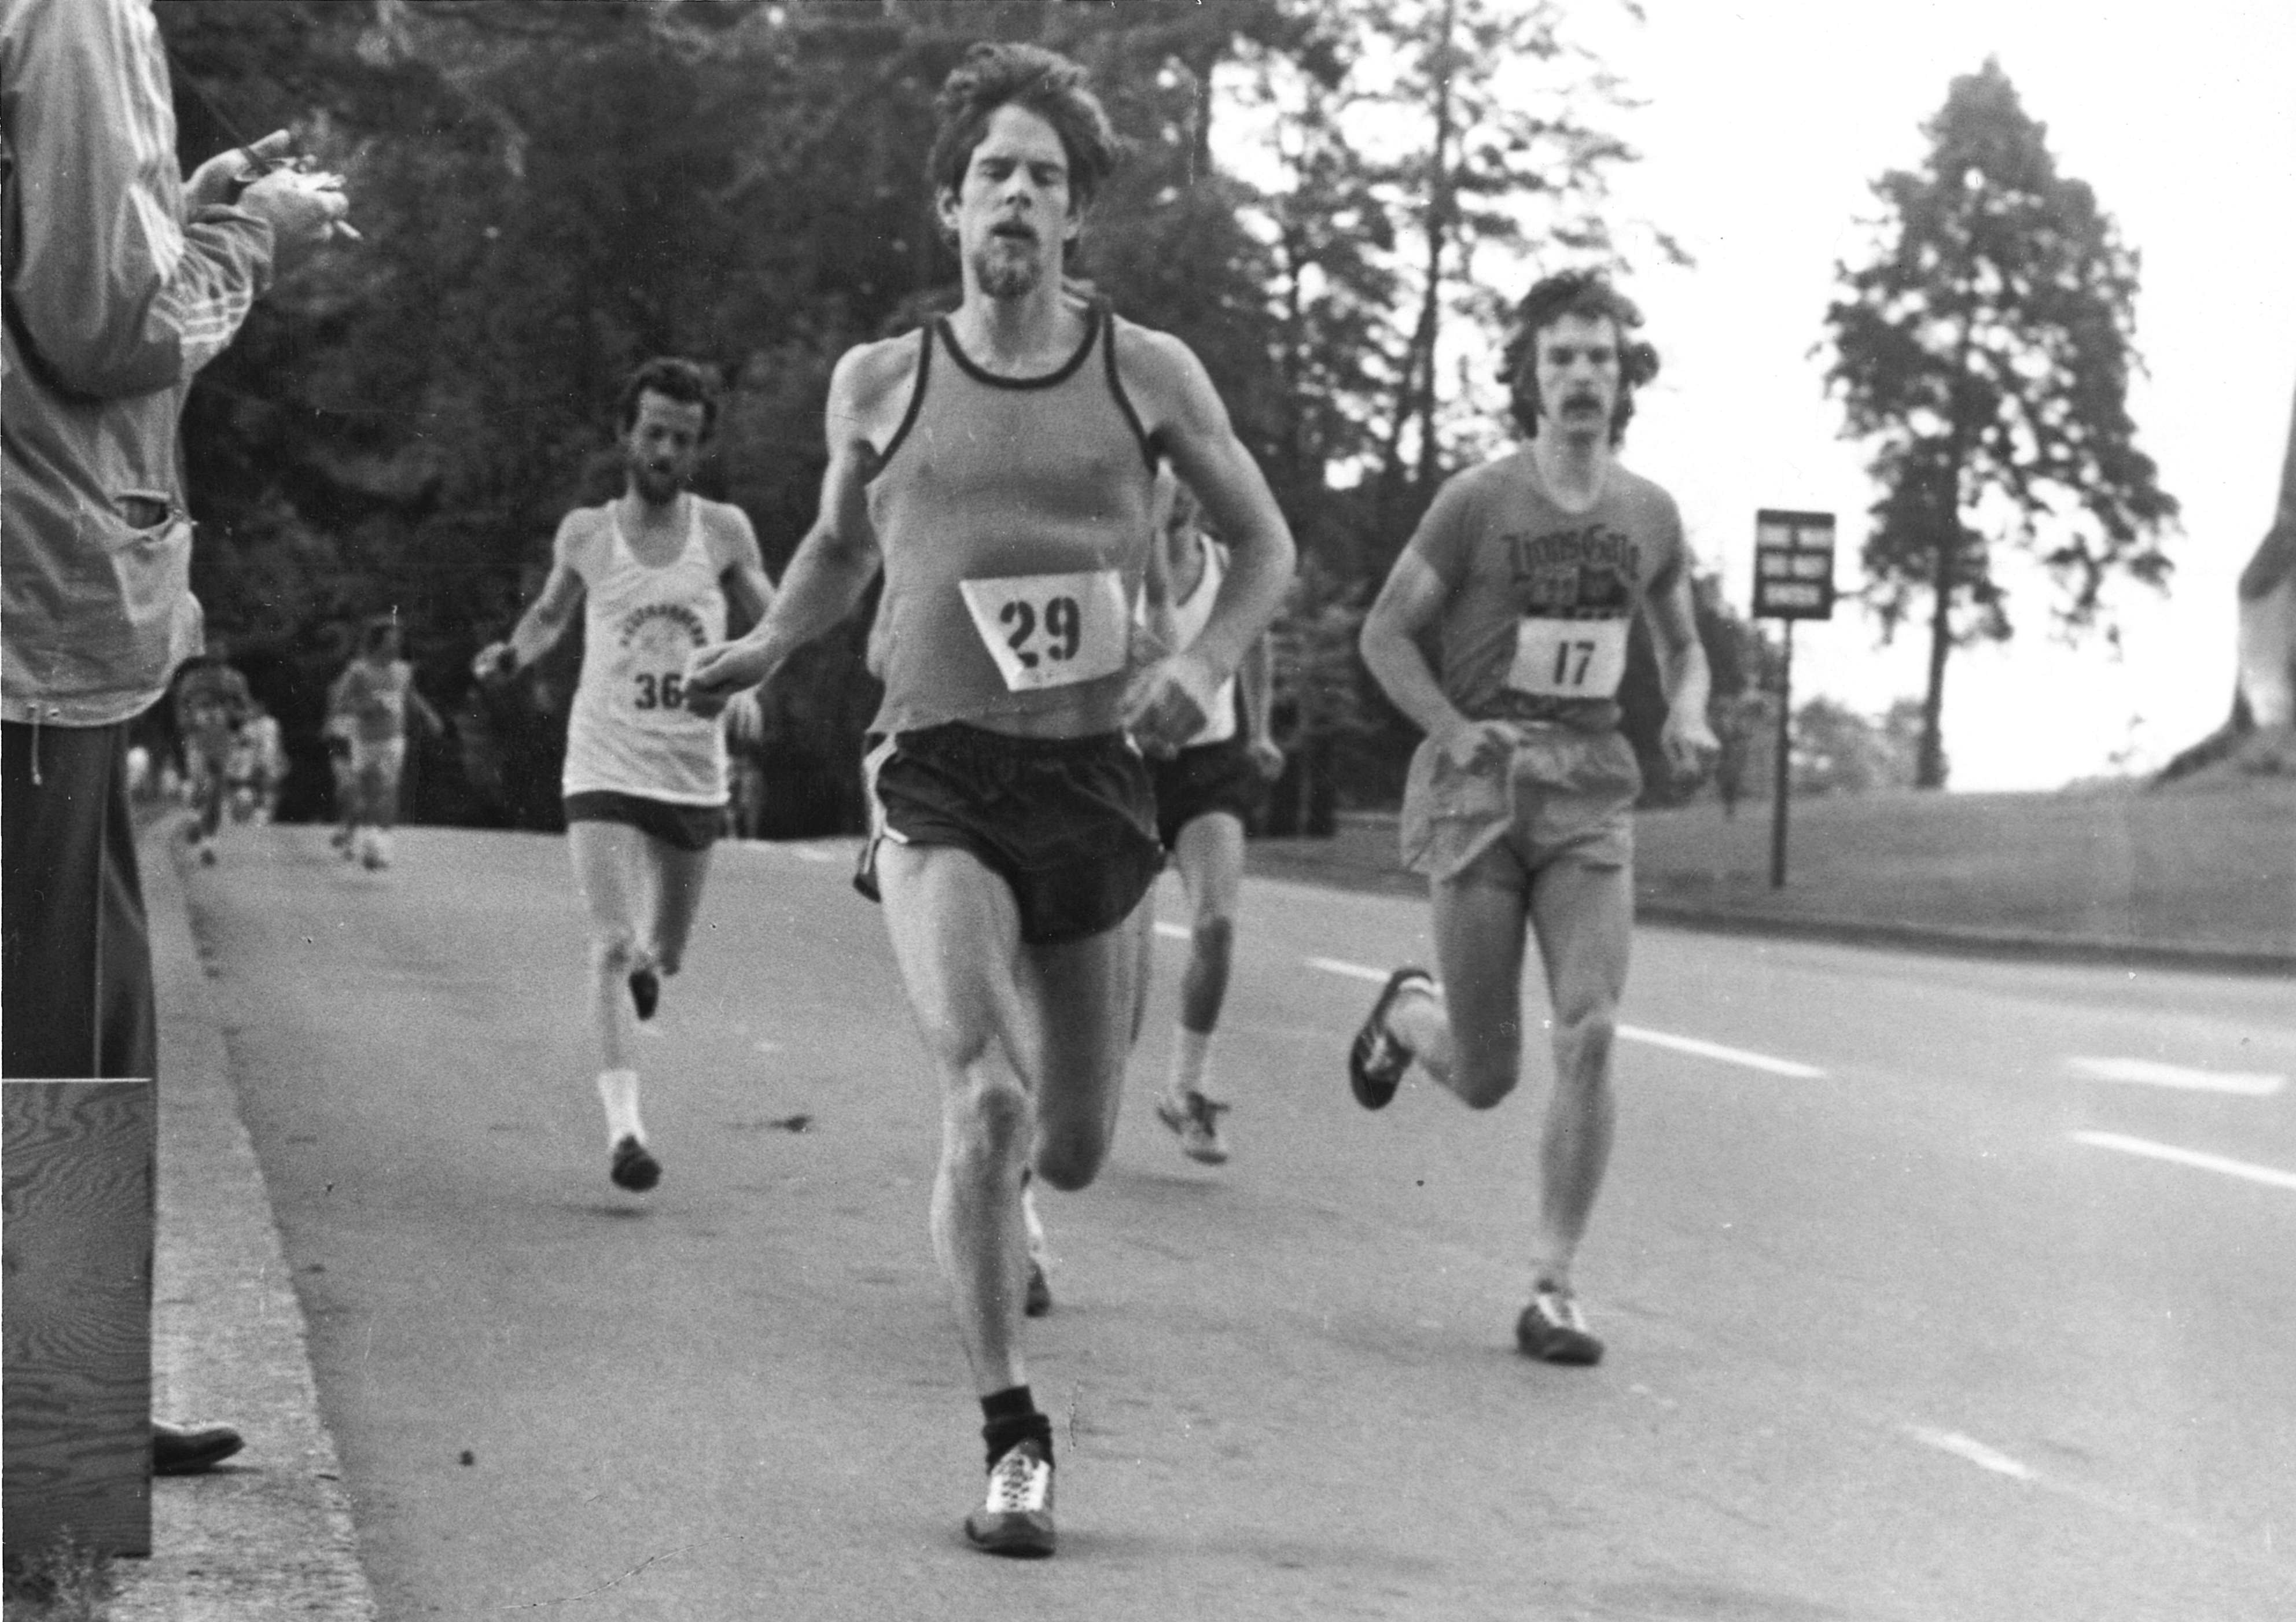 1973 Vancouver Marathon - Bill Herriot (36) Tom Howard (29) Jack Taunton (17)